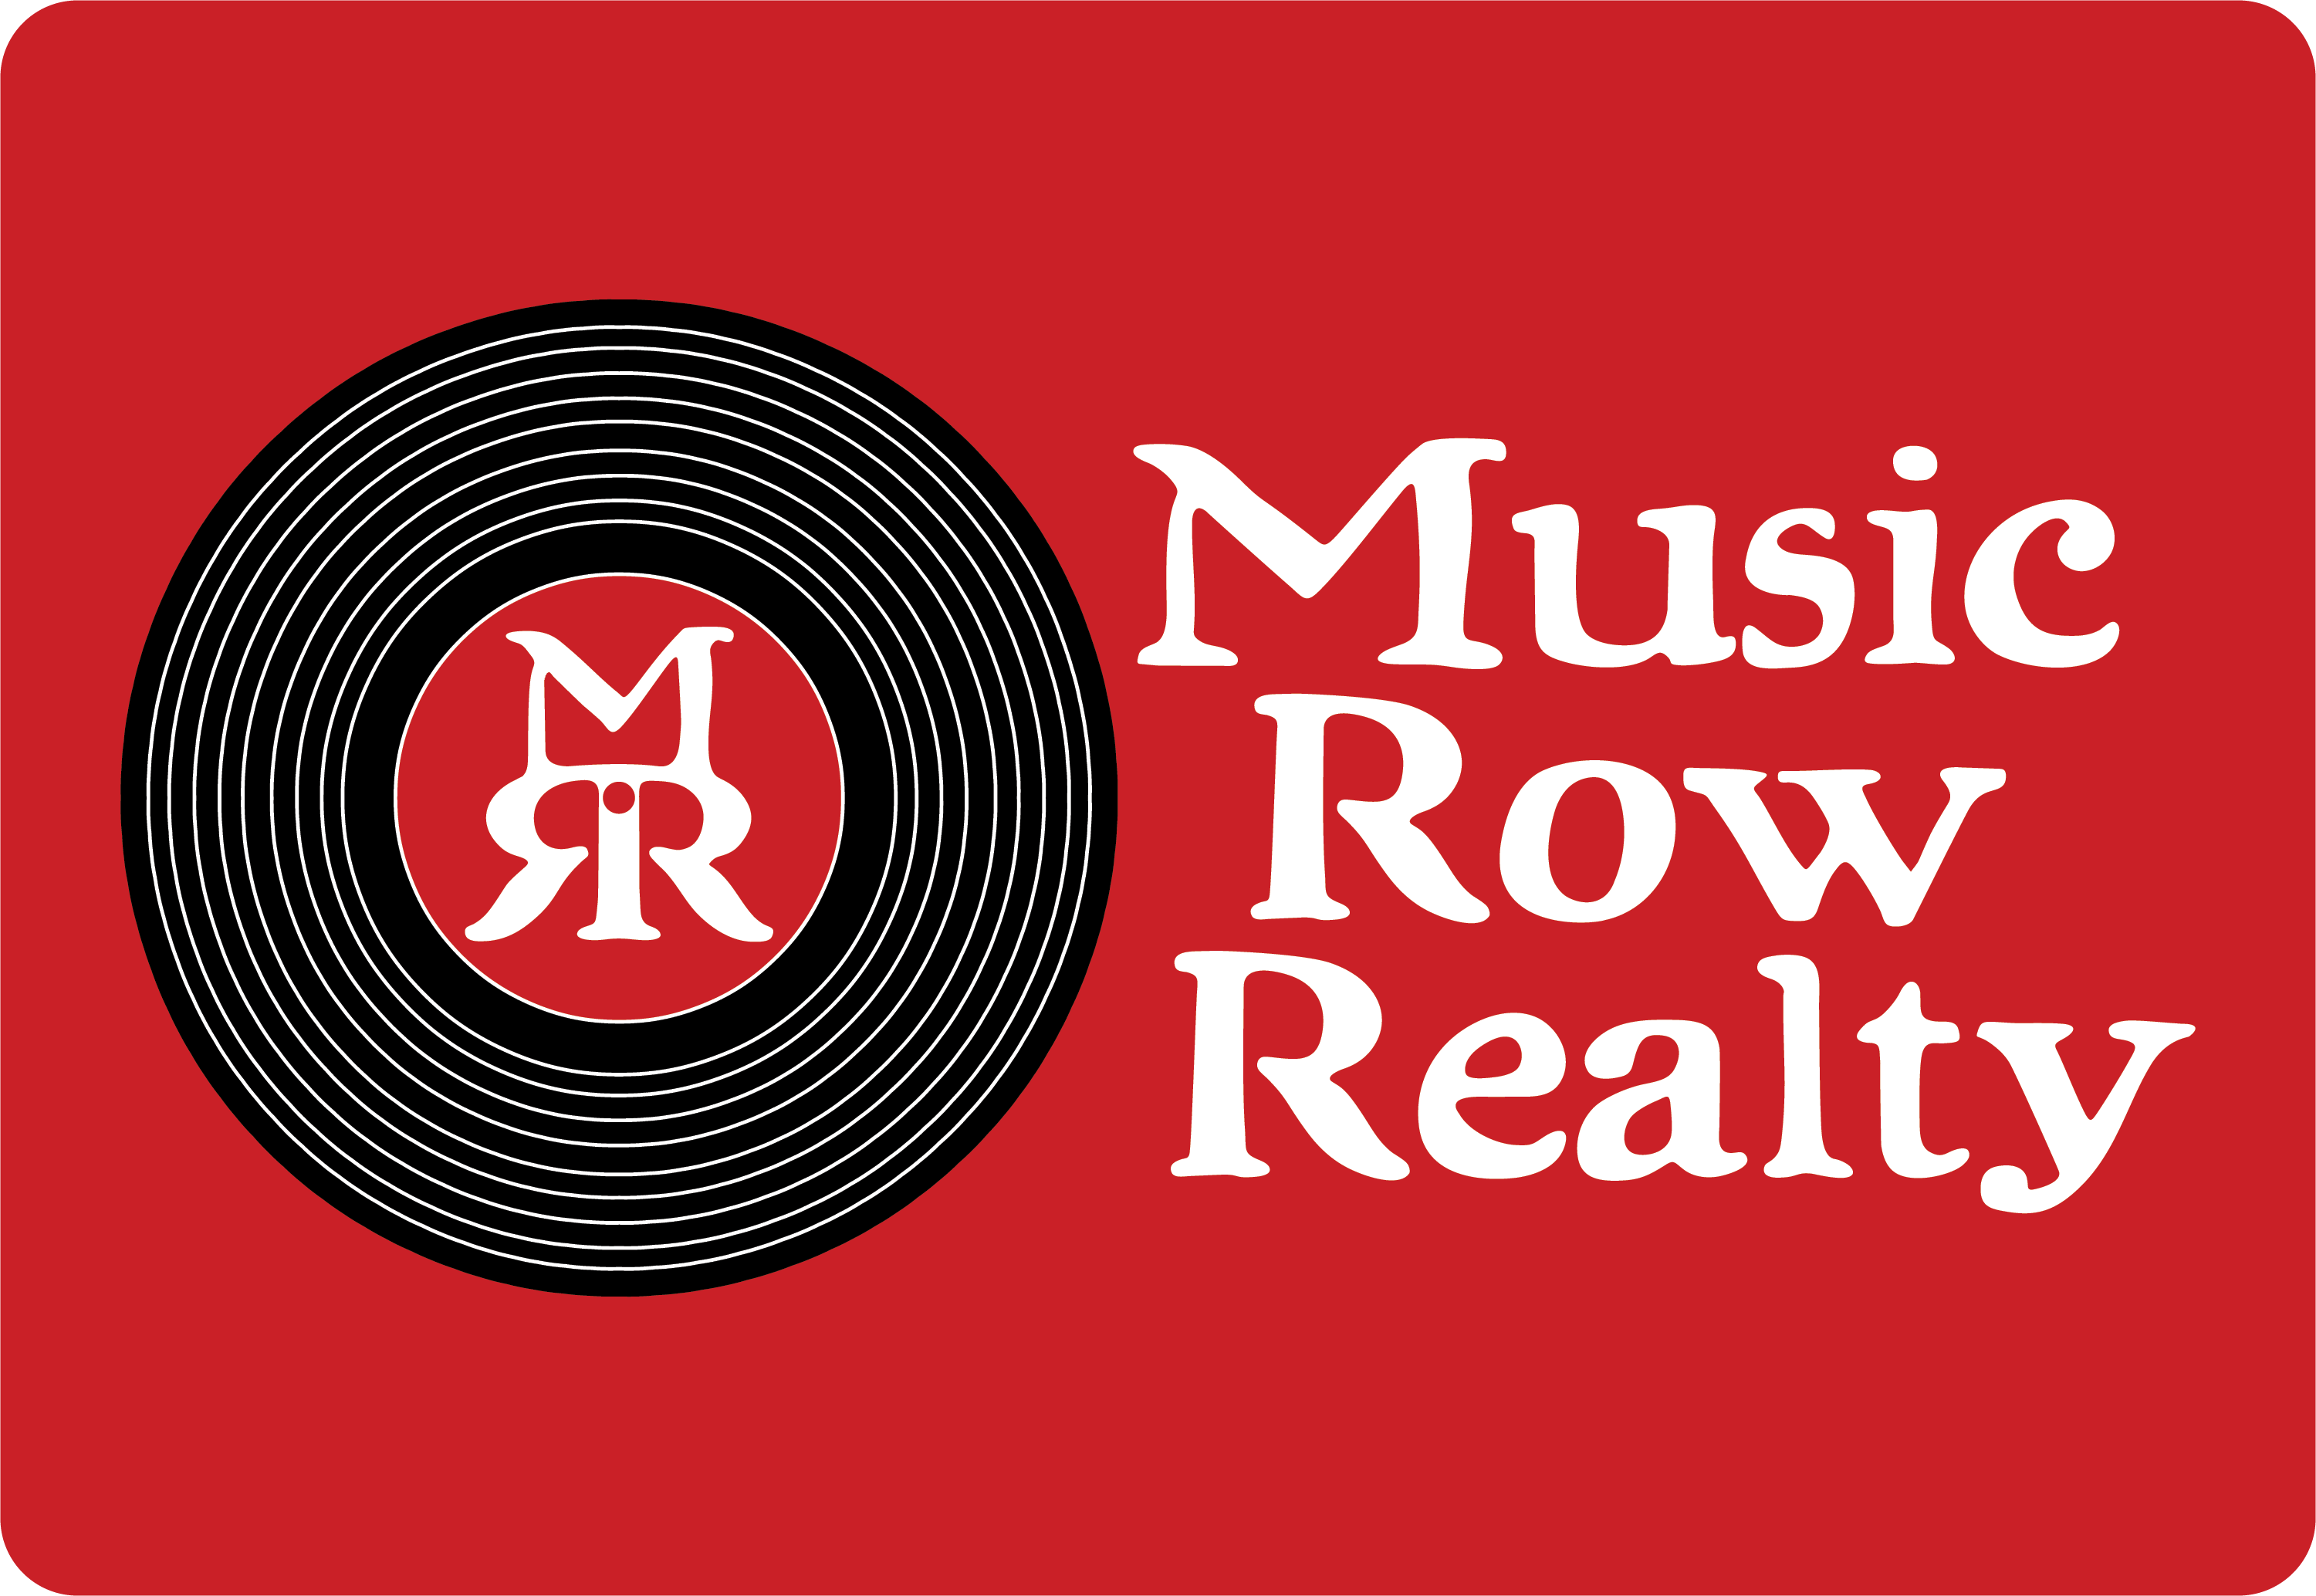 Music Row Realty